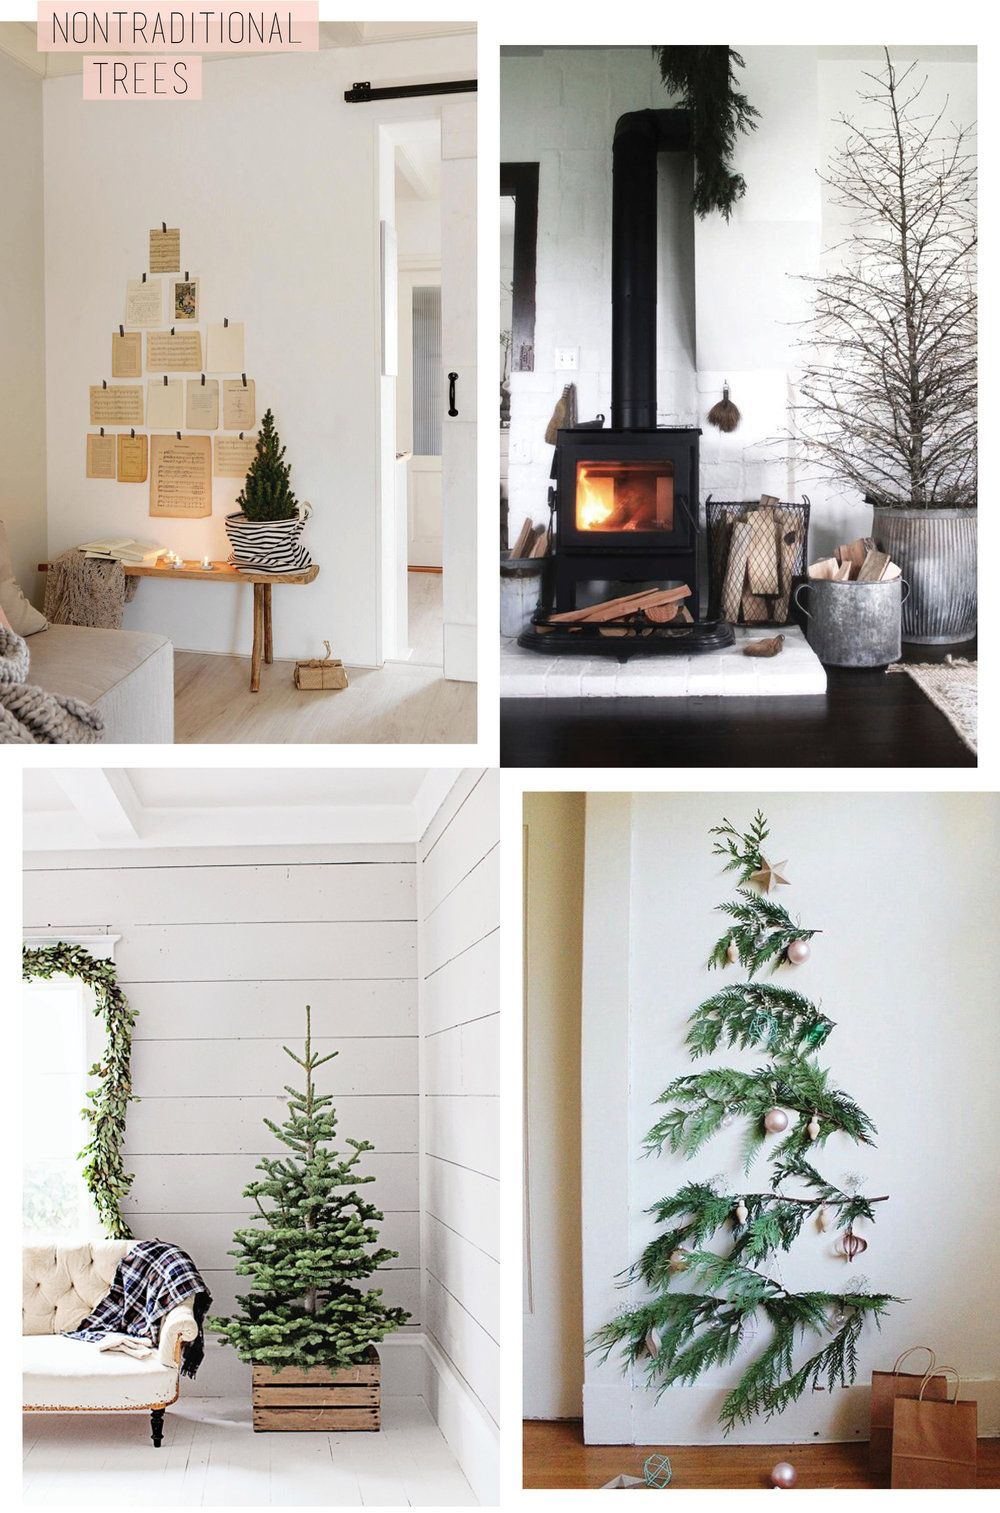 Non Traditional Christmas Tree Ideas.Re Pinned Non Traditional Christmas Christmas Decor Gift